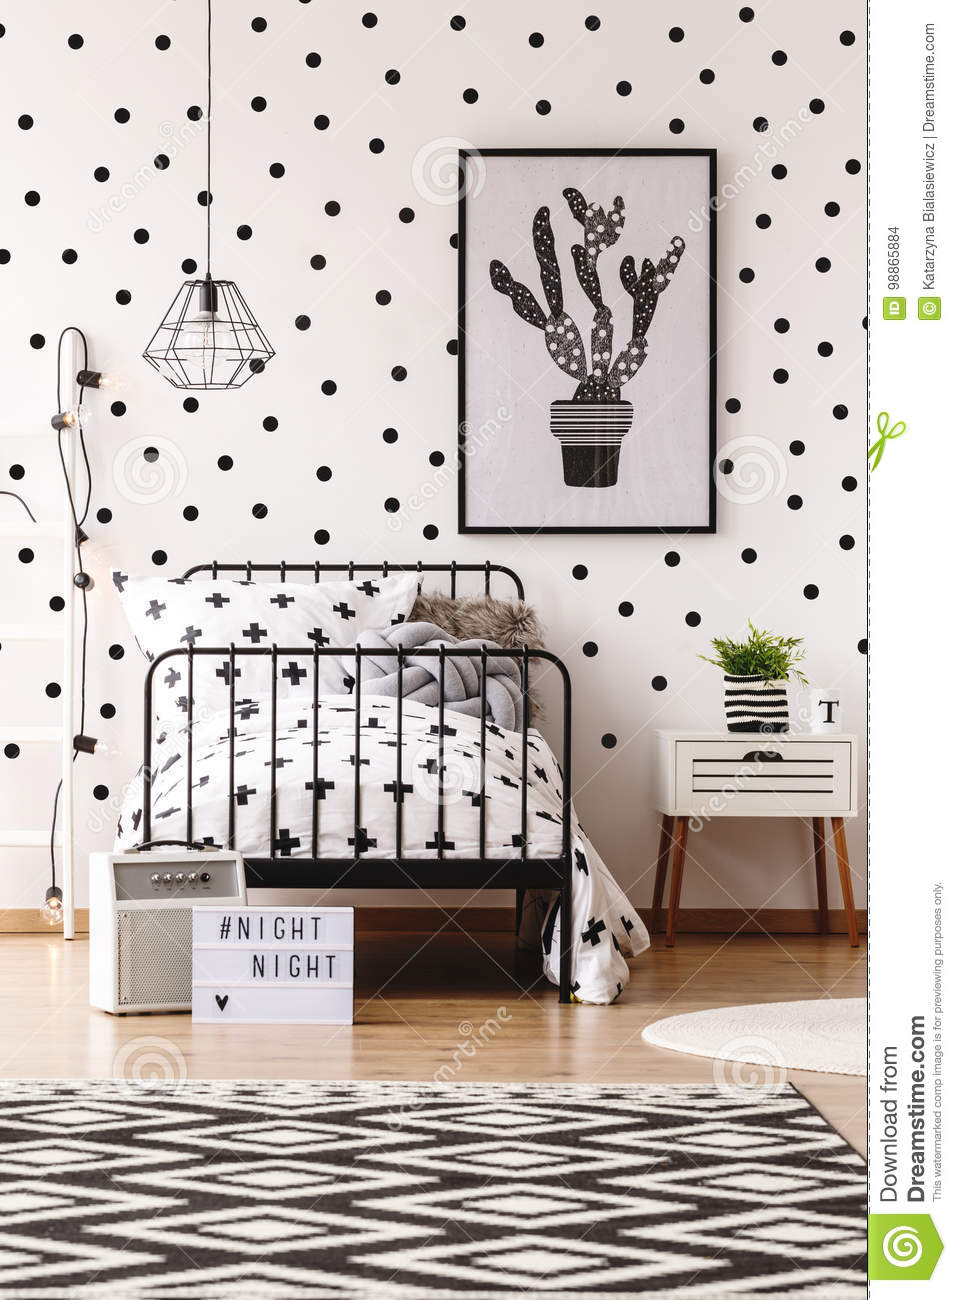 monochromatic kids room with carpet stock photo image of childgeometric carpet and simple poster in monochromatic kids room with white wallpaper with black dots